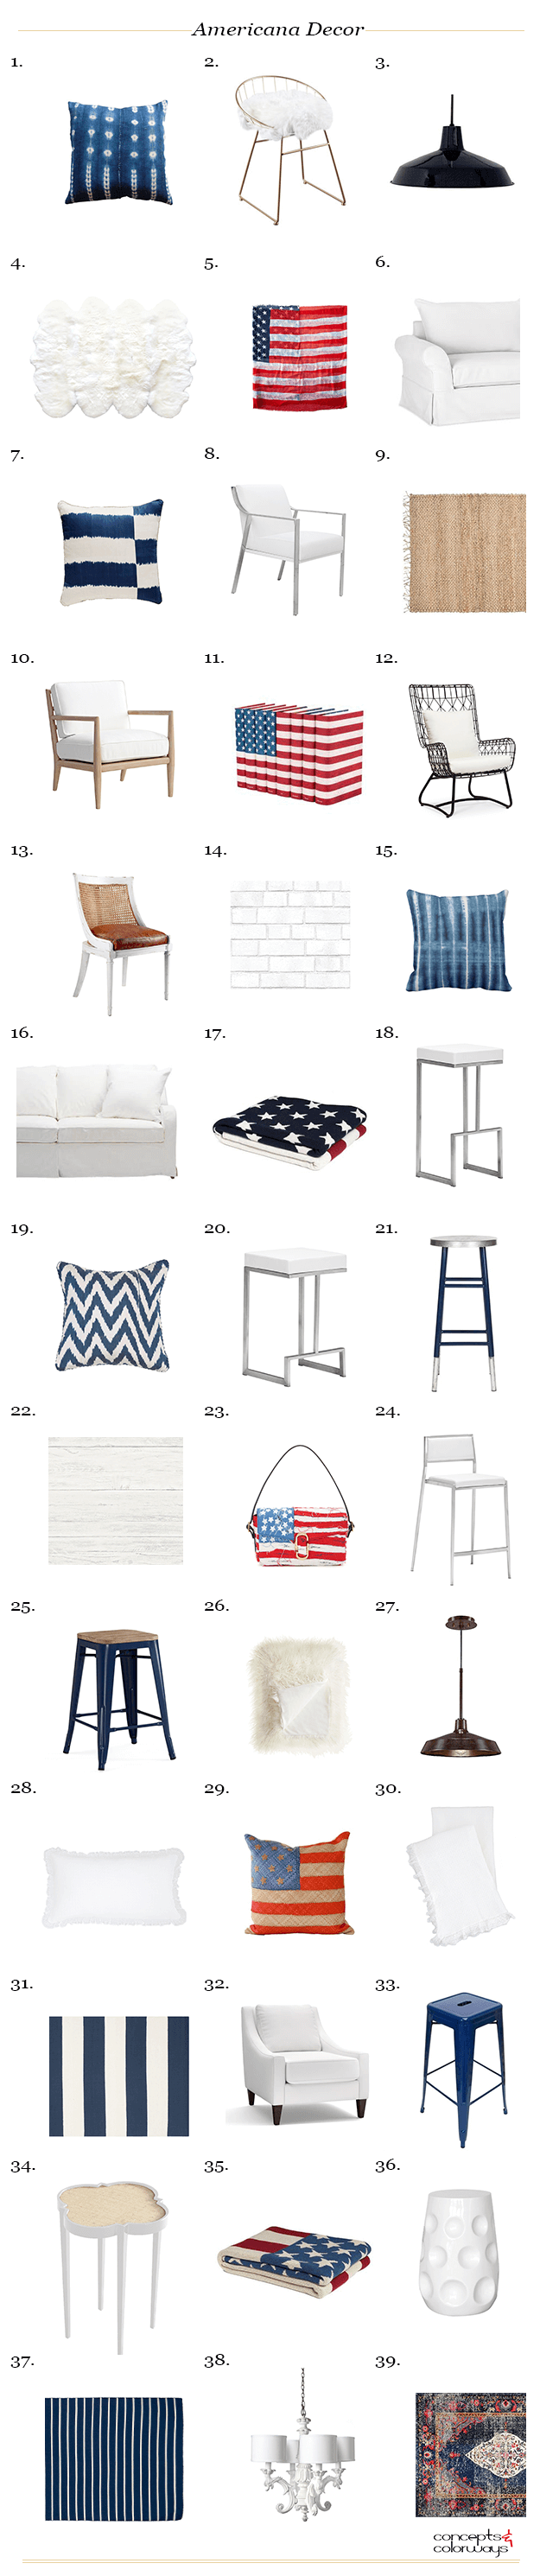 americana decor product roundup